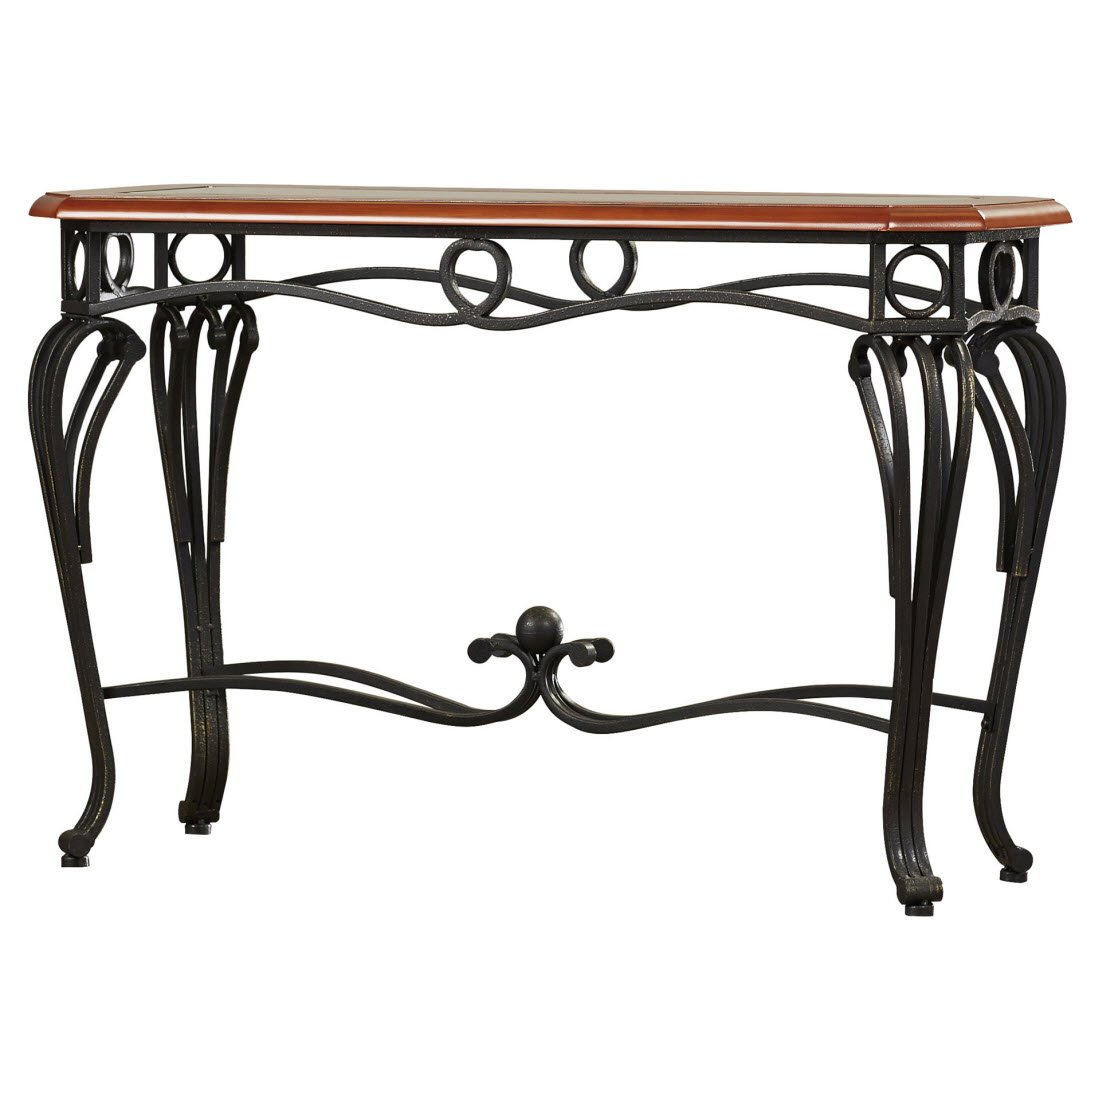 Wonderful Amazon.com: Broughton Console Table   Perfect Piece Of Furniture To Complement  Your Living Room   Made Out Of Metal As Its Base Material, While The Top ... Pictures